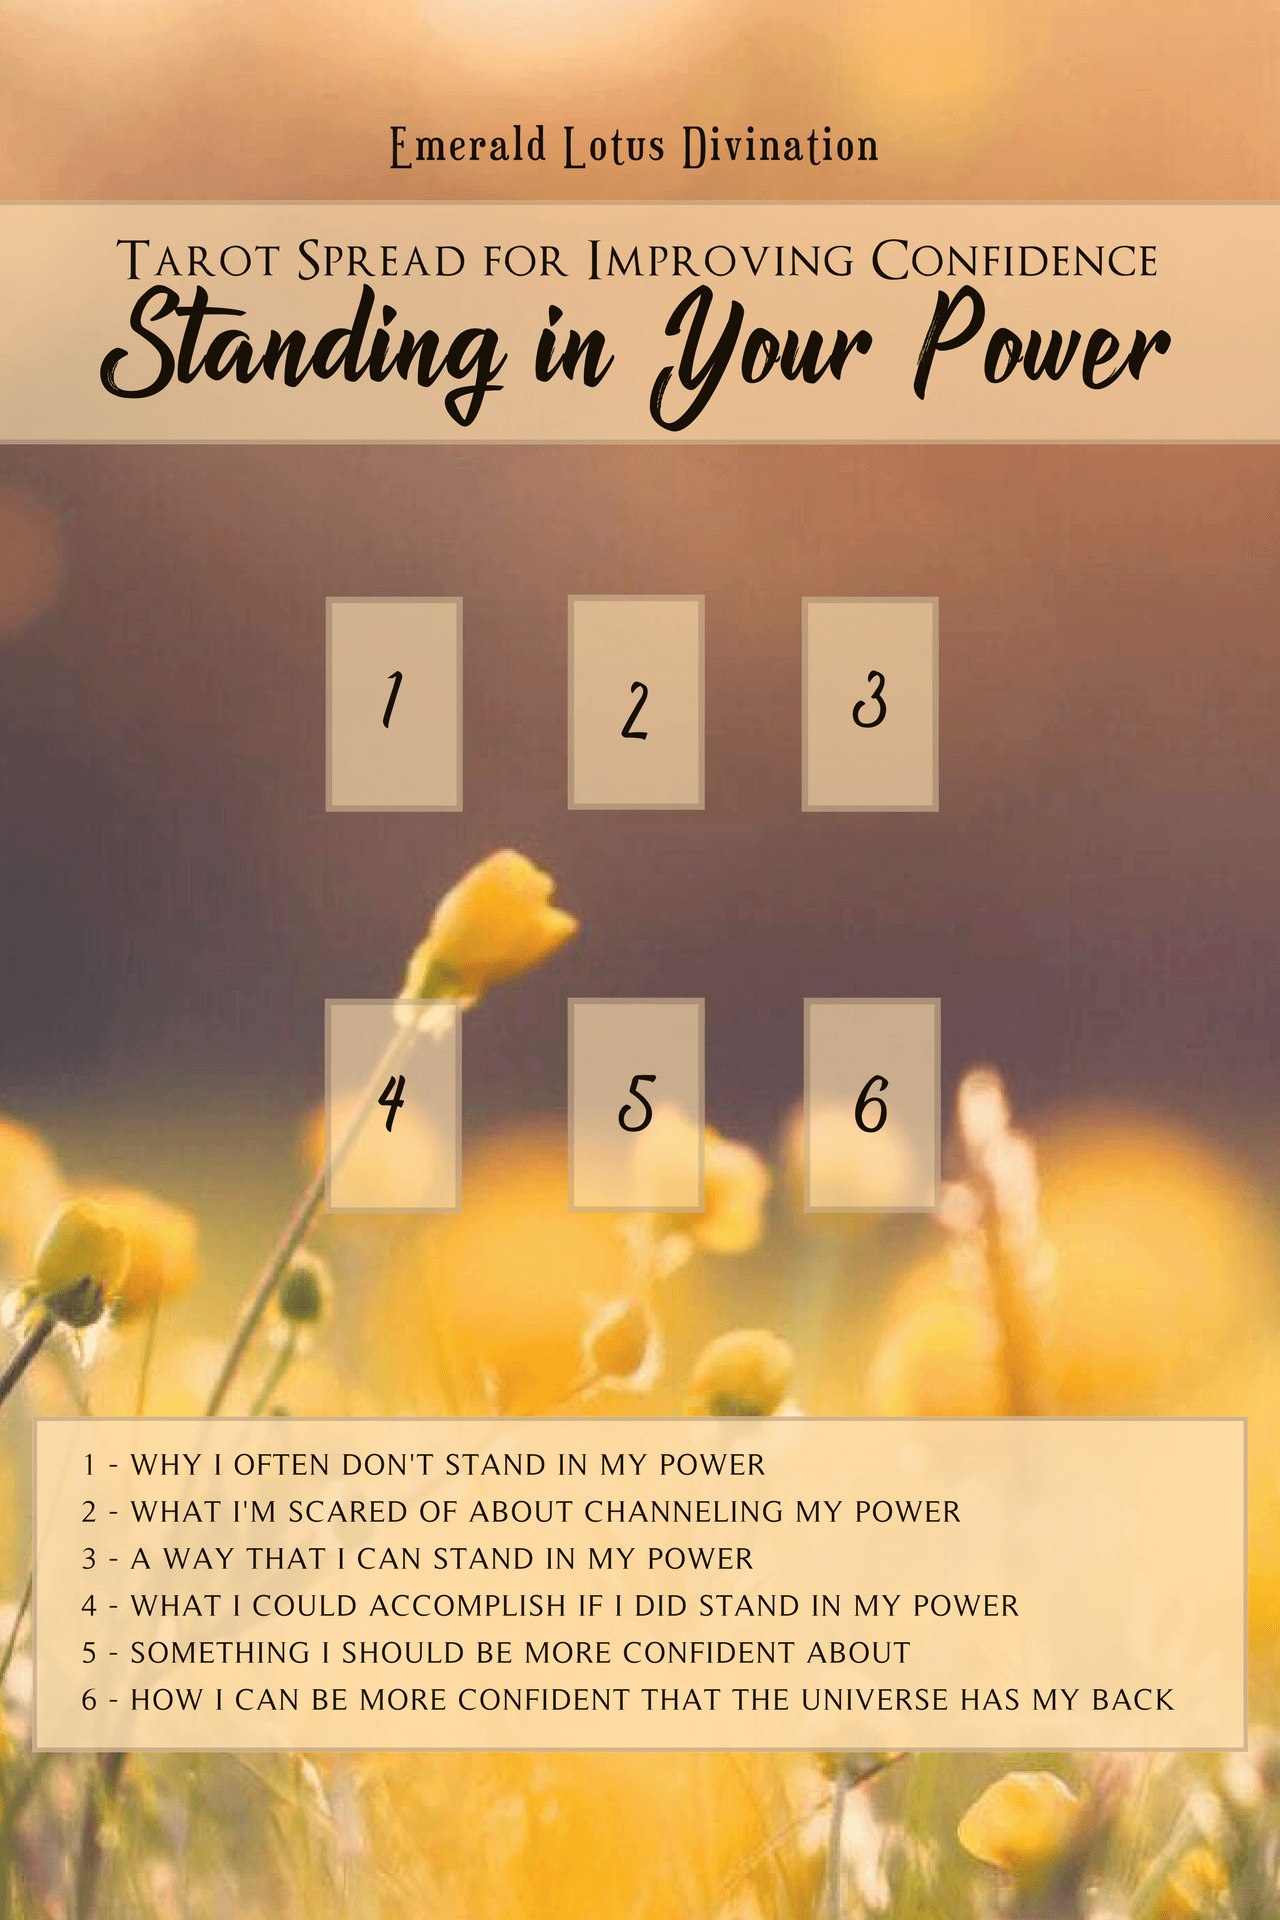 standing-in-your-power-tarot-spread-for-confidence-2.png